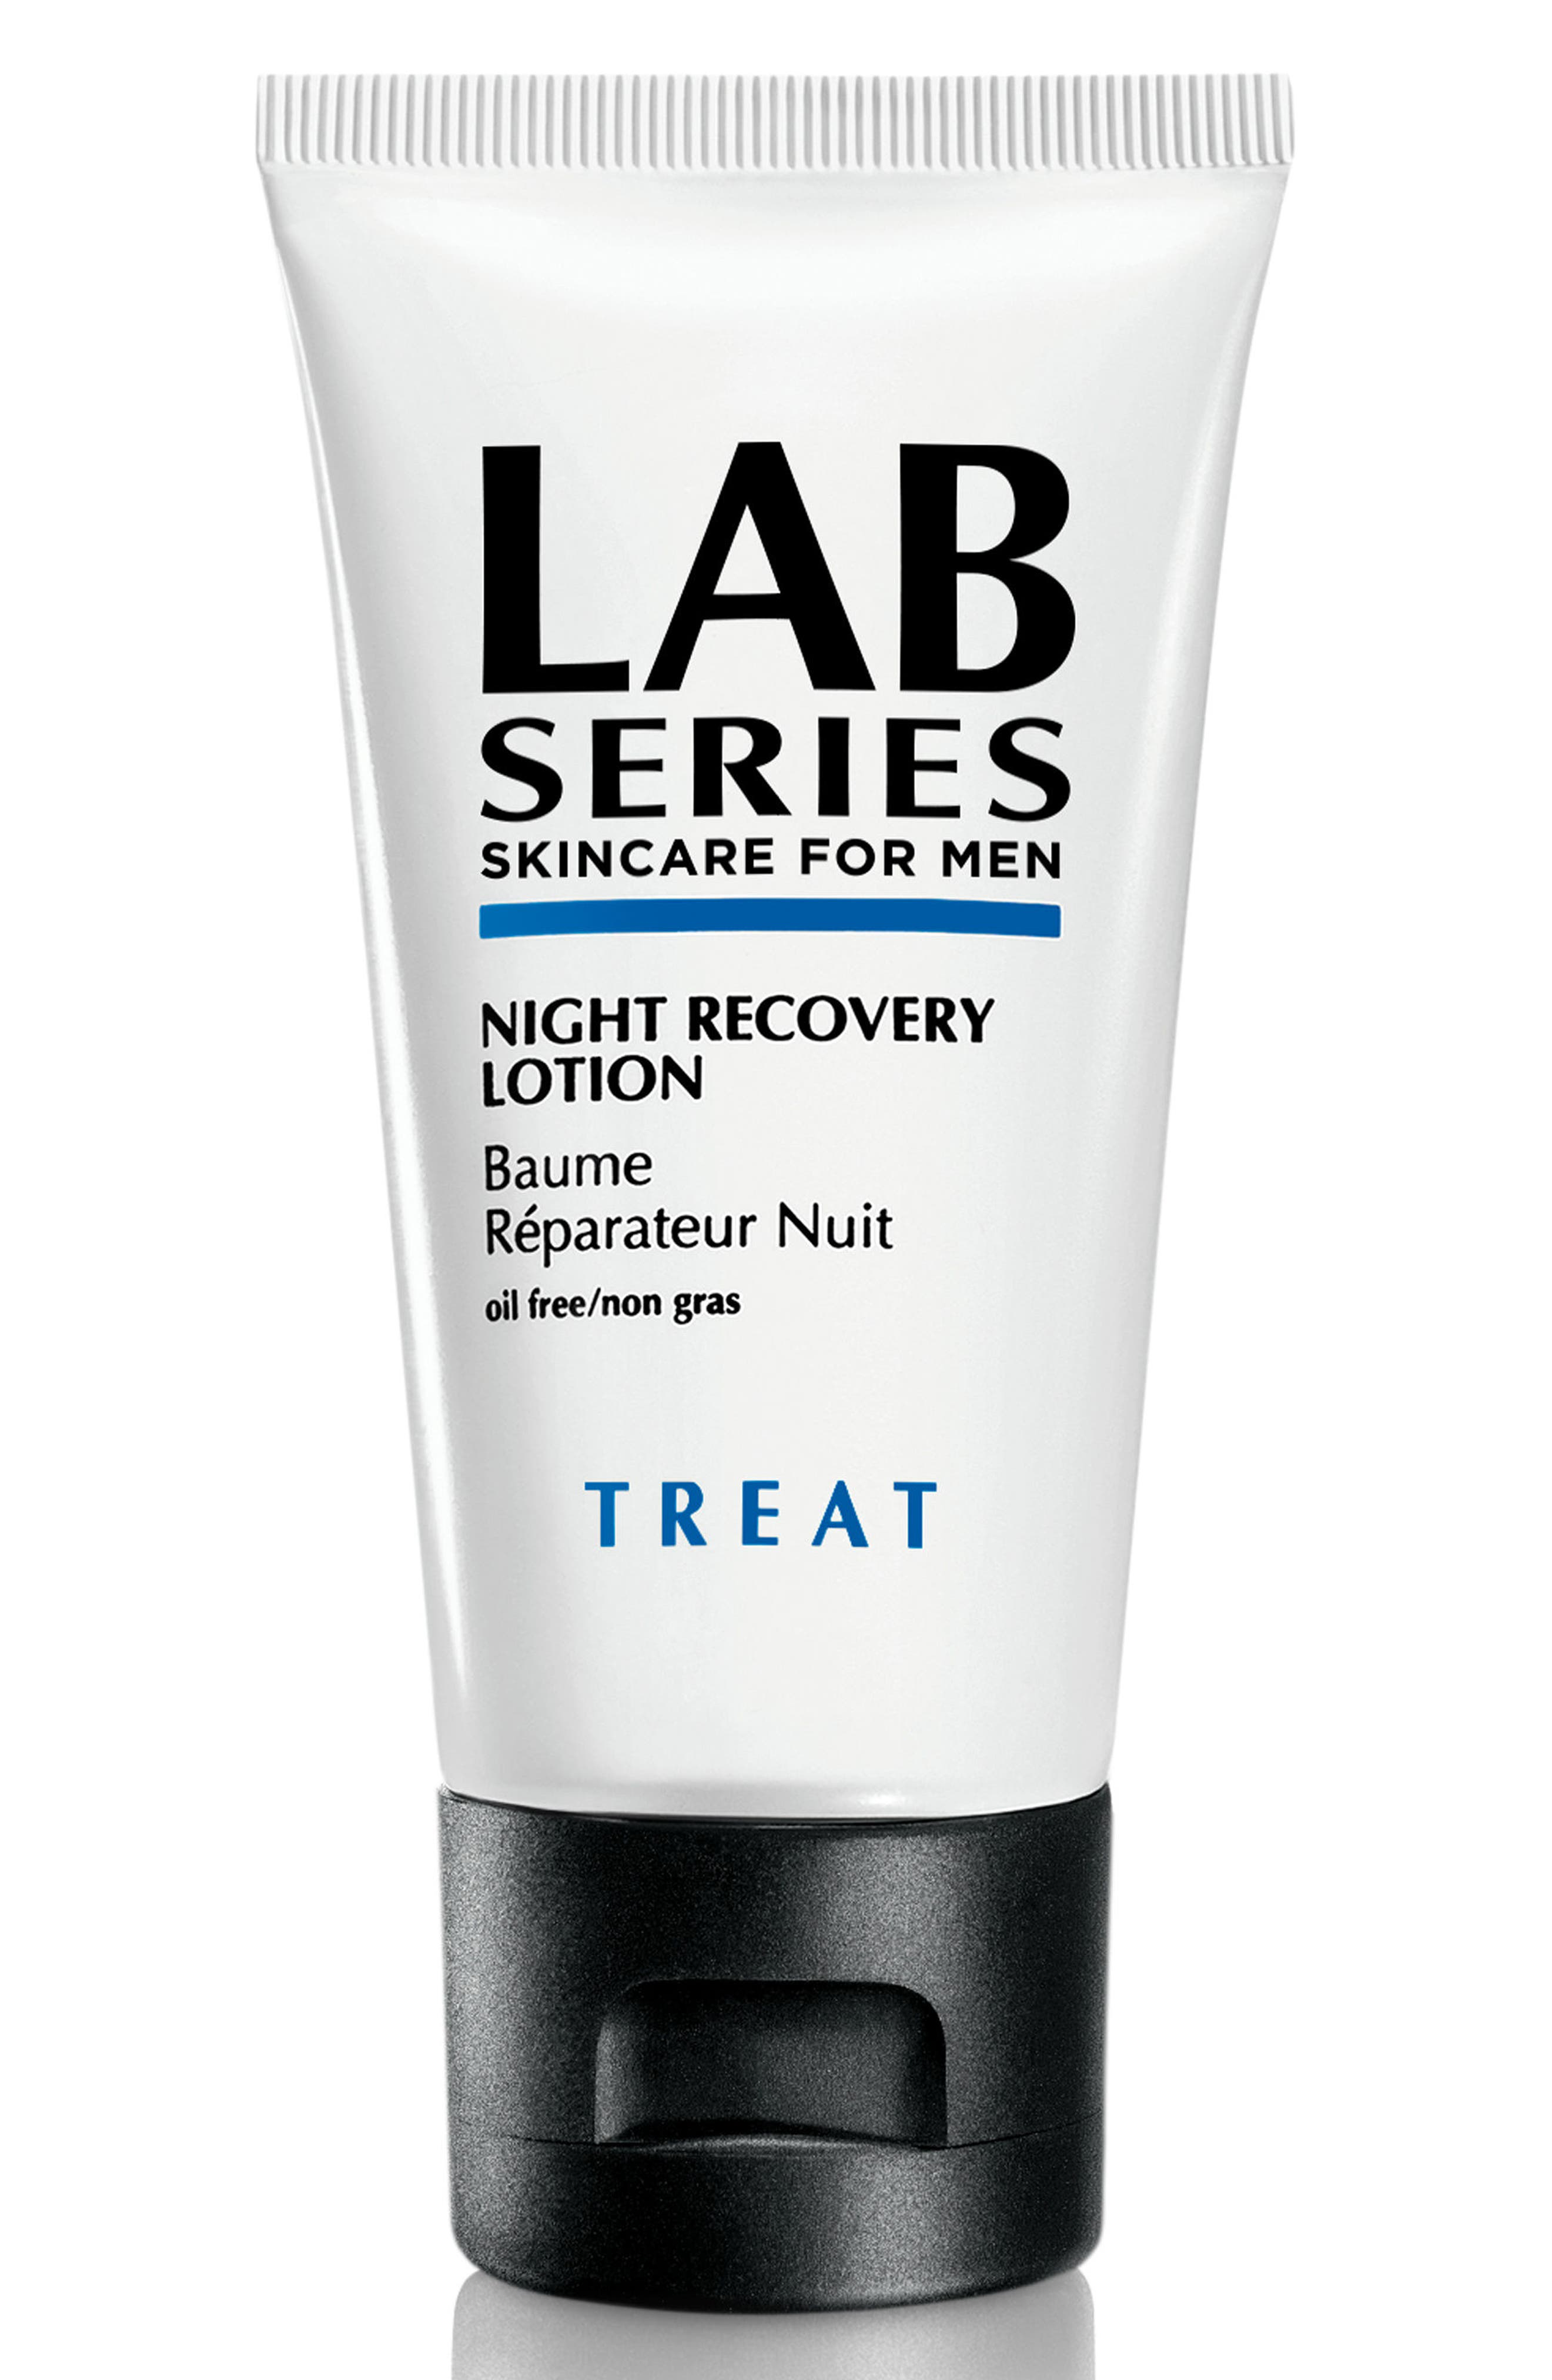 Lab Series Skincare for Men Night Recovery Lotion